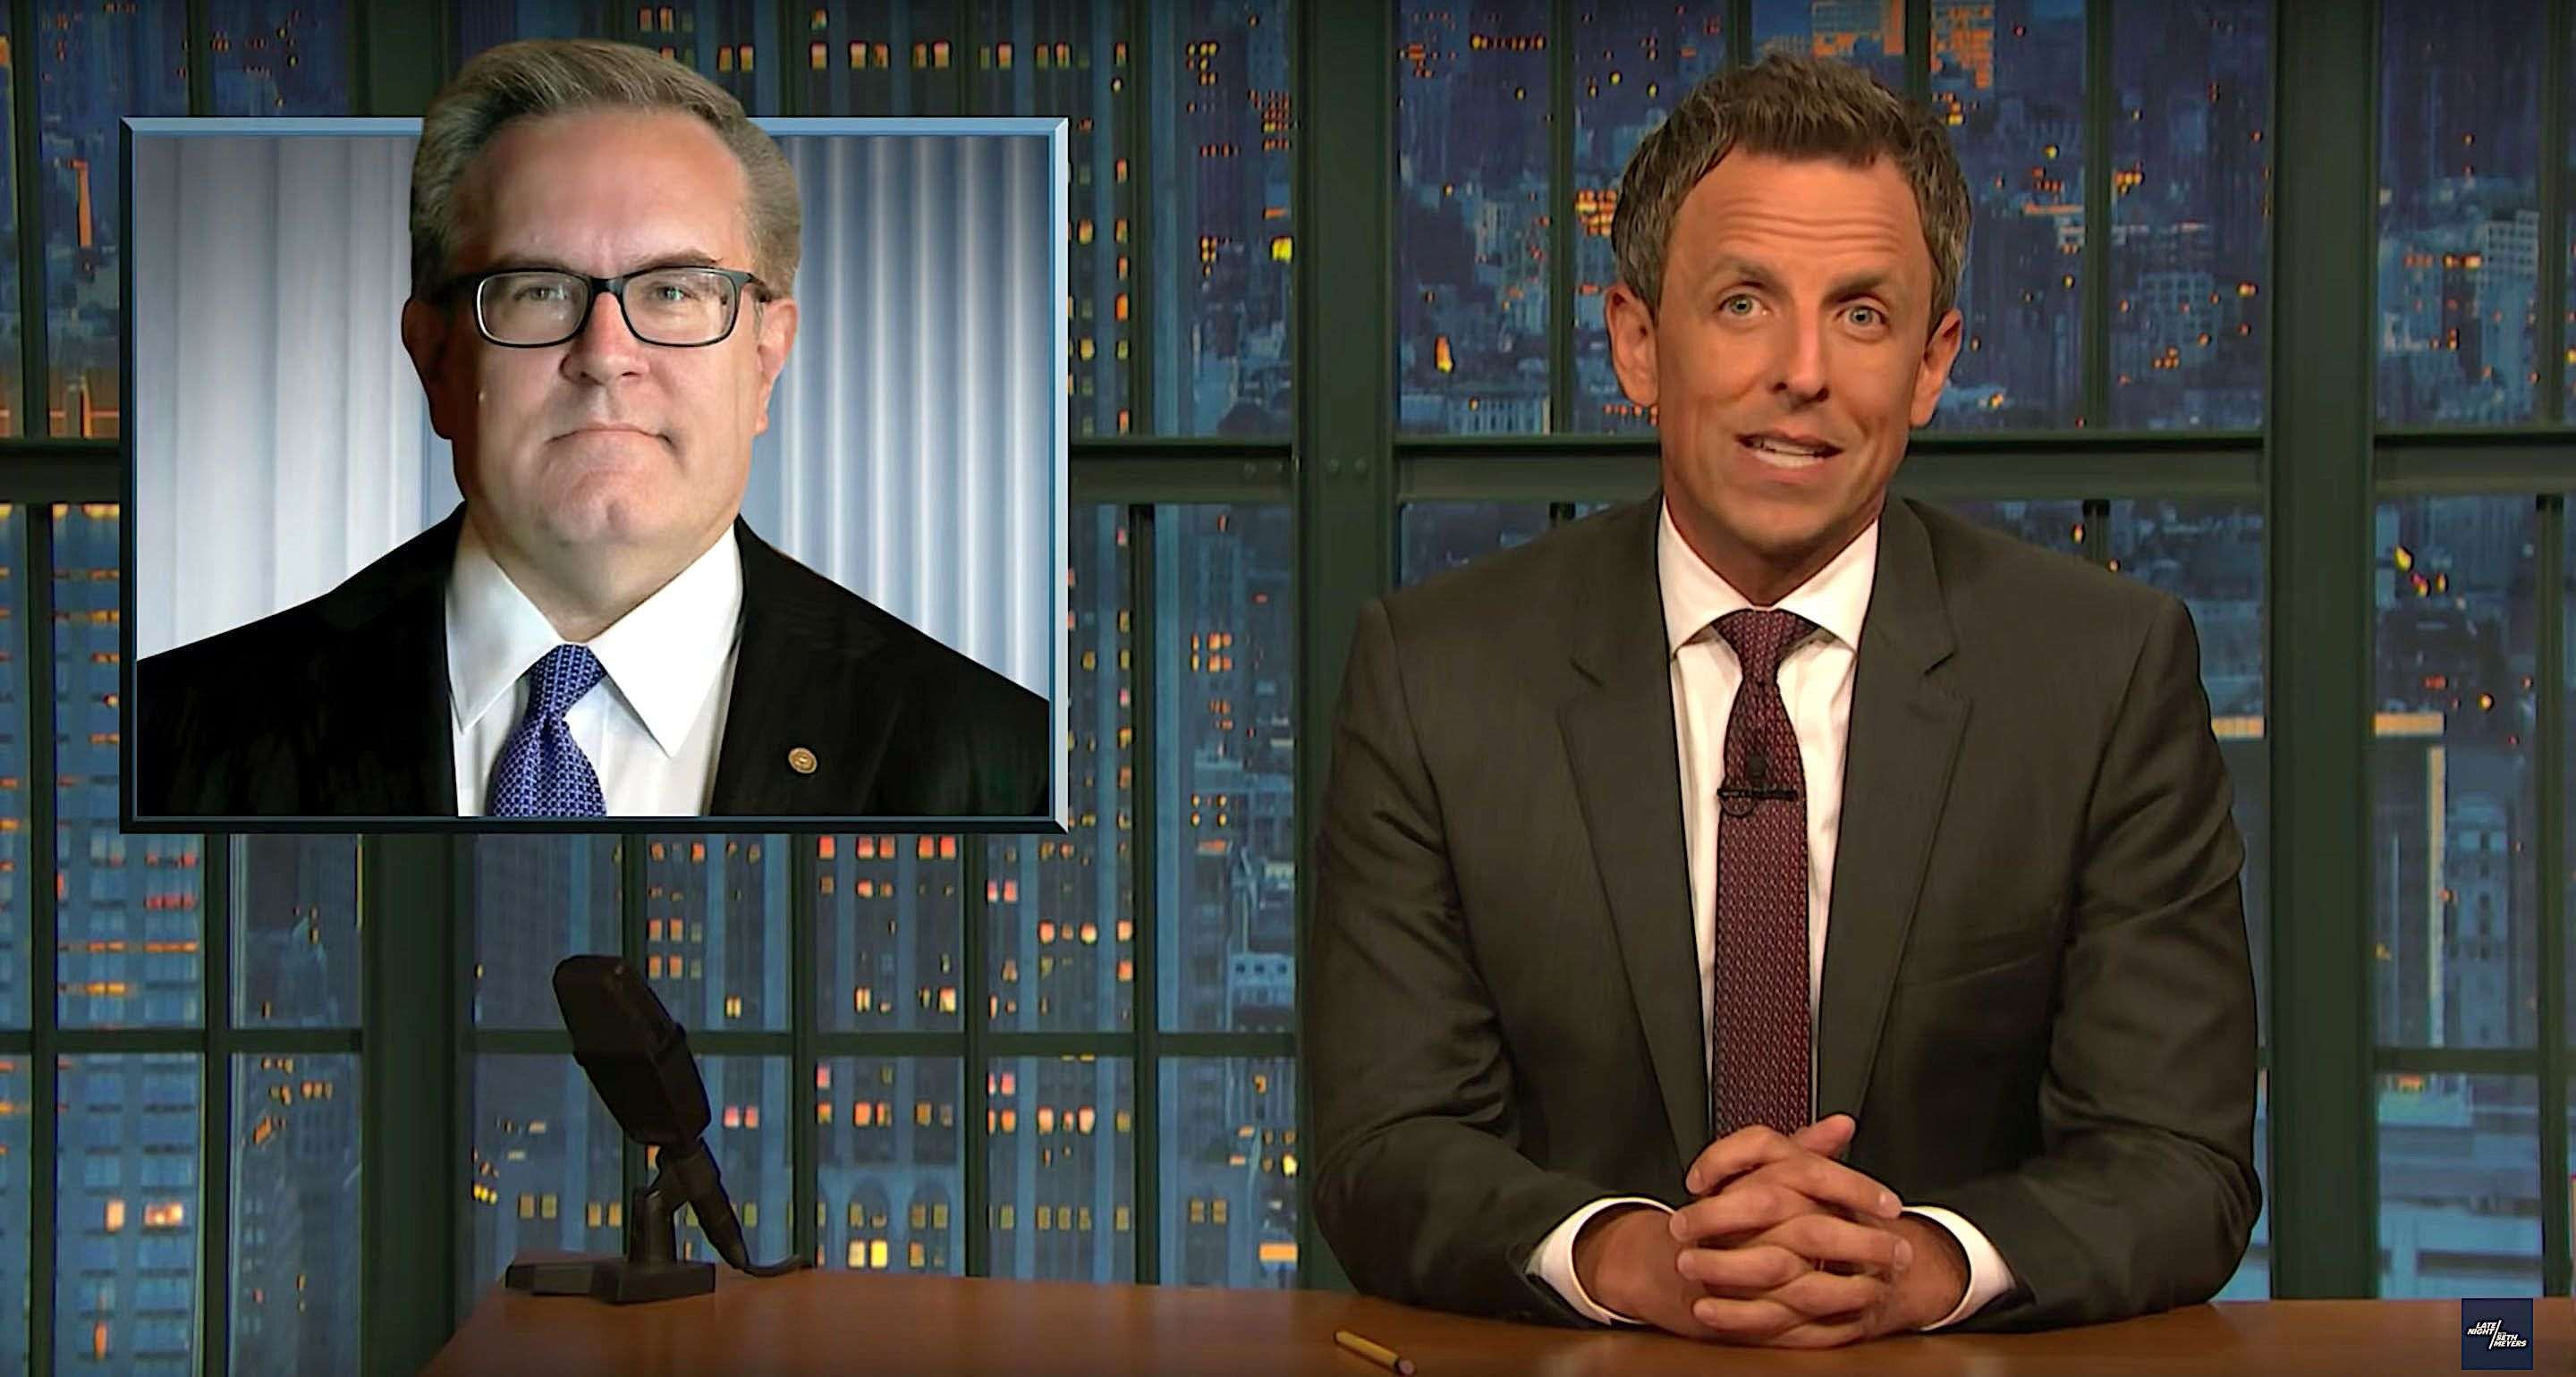 Seth Meyers of Late Night checks in on the new EPA administrator Andrew Wheeler